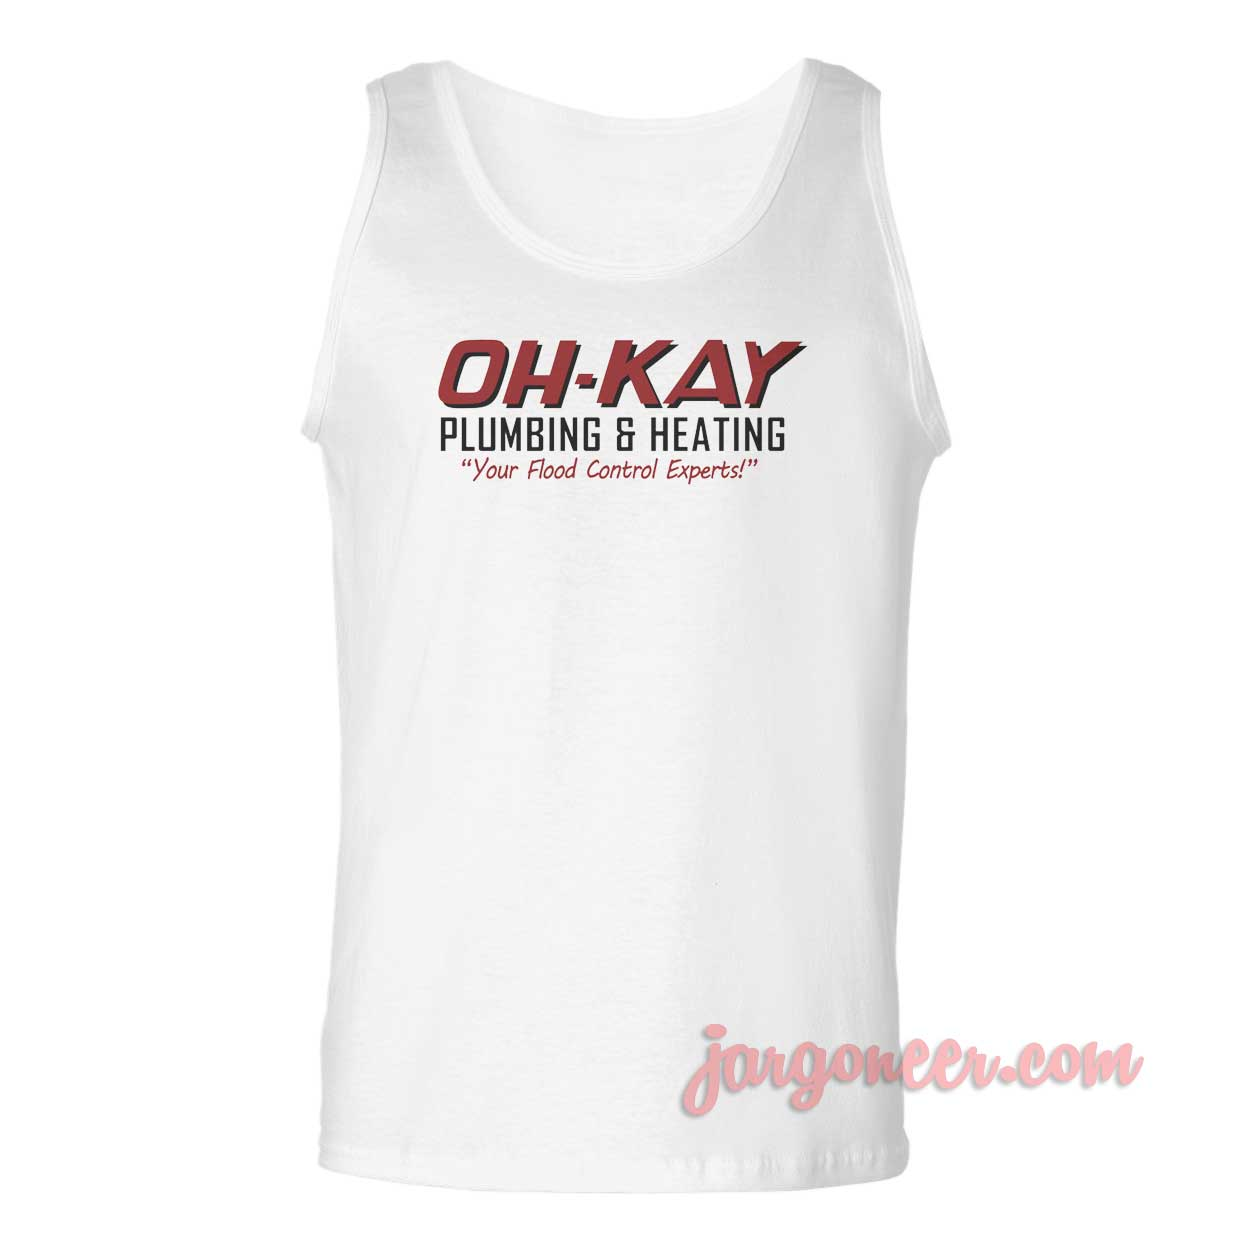 Oh Kay Plumbing And Heating Unisex Adult Tank Top